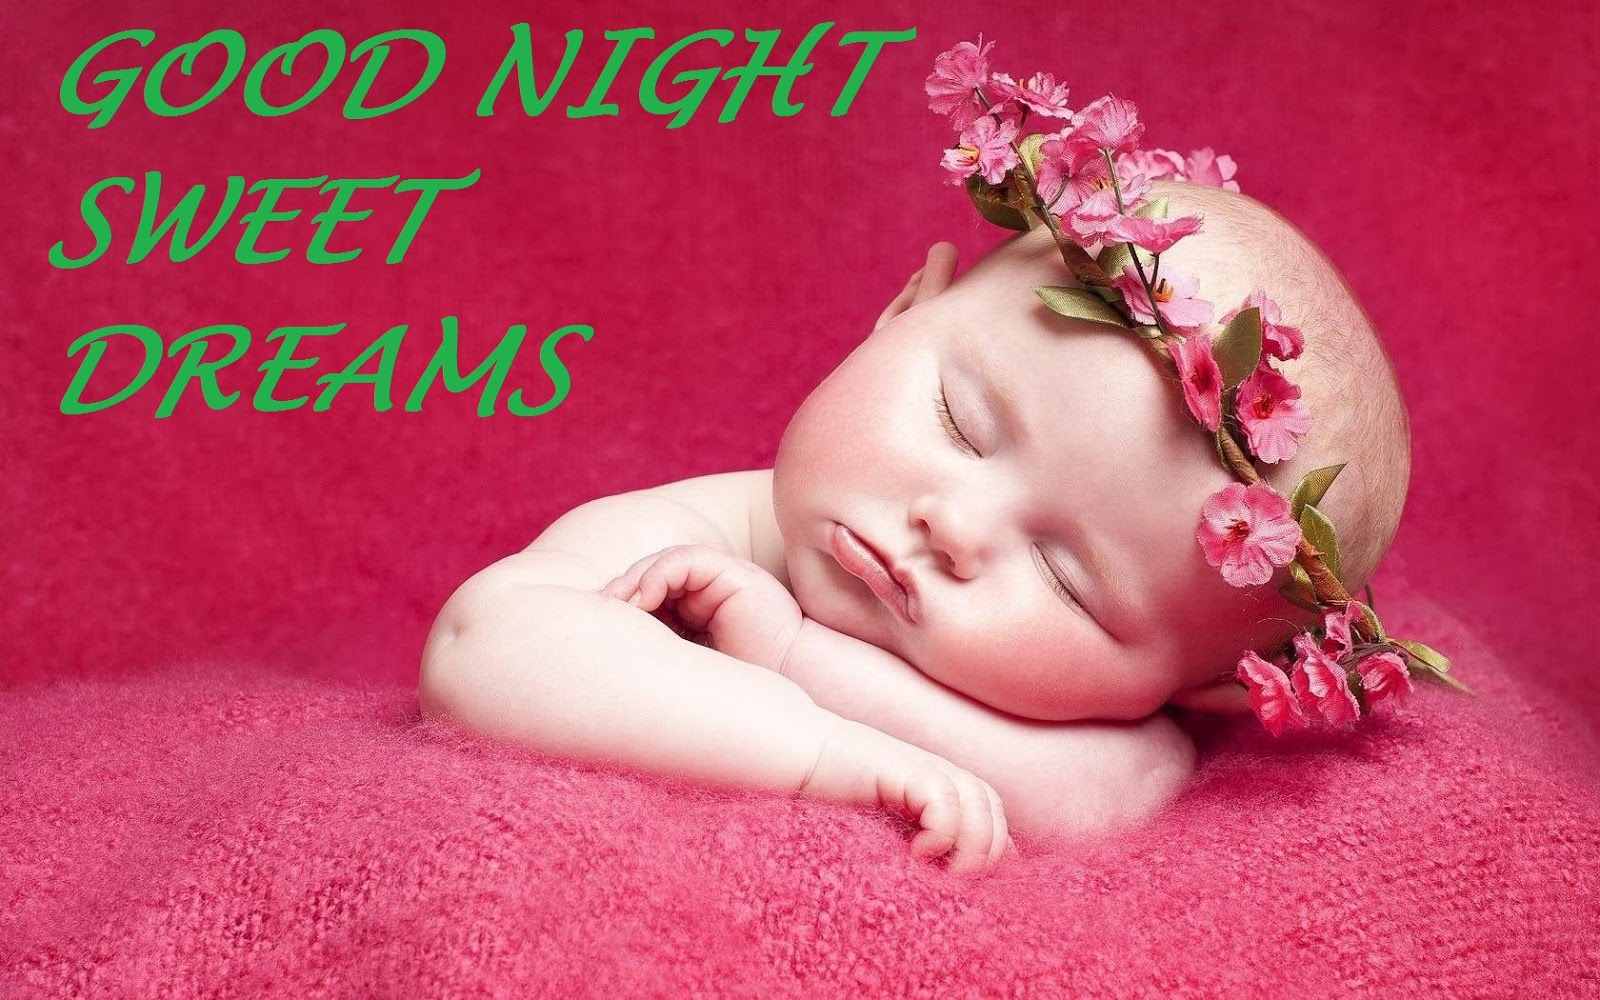 cute babies good night wishes in 2018 wallpapersimages